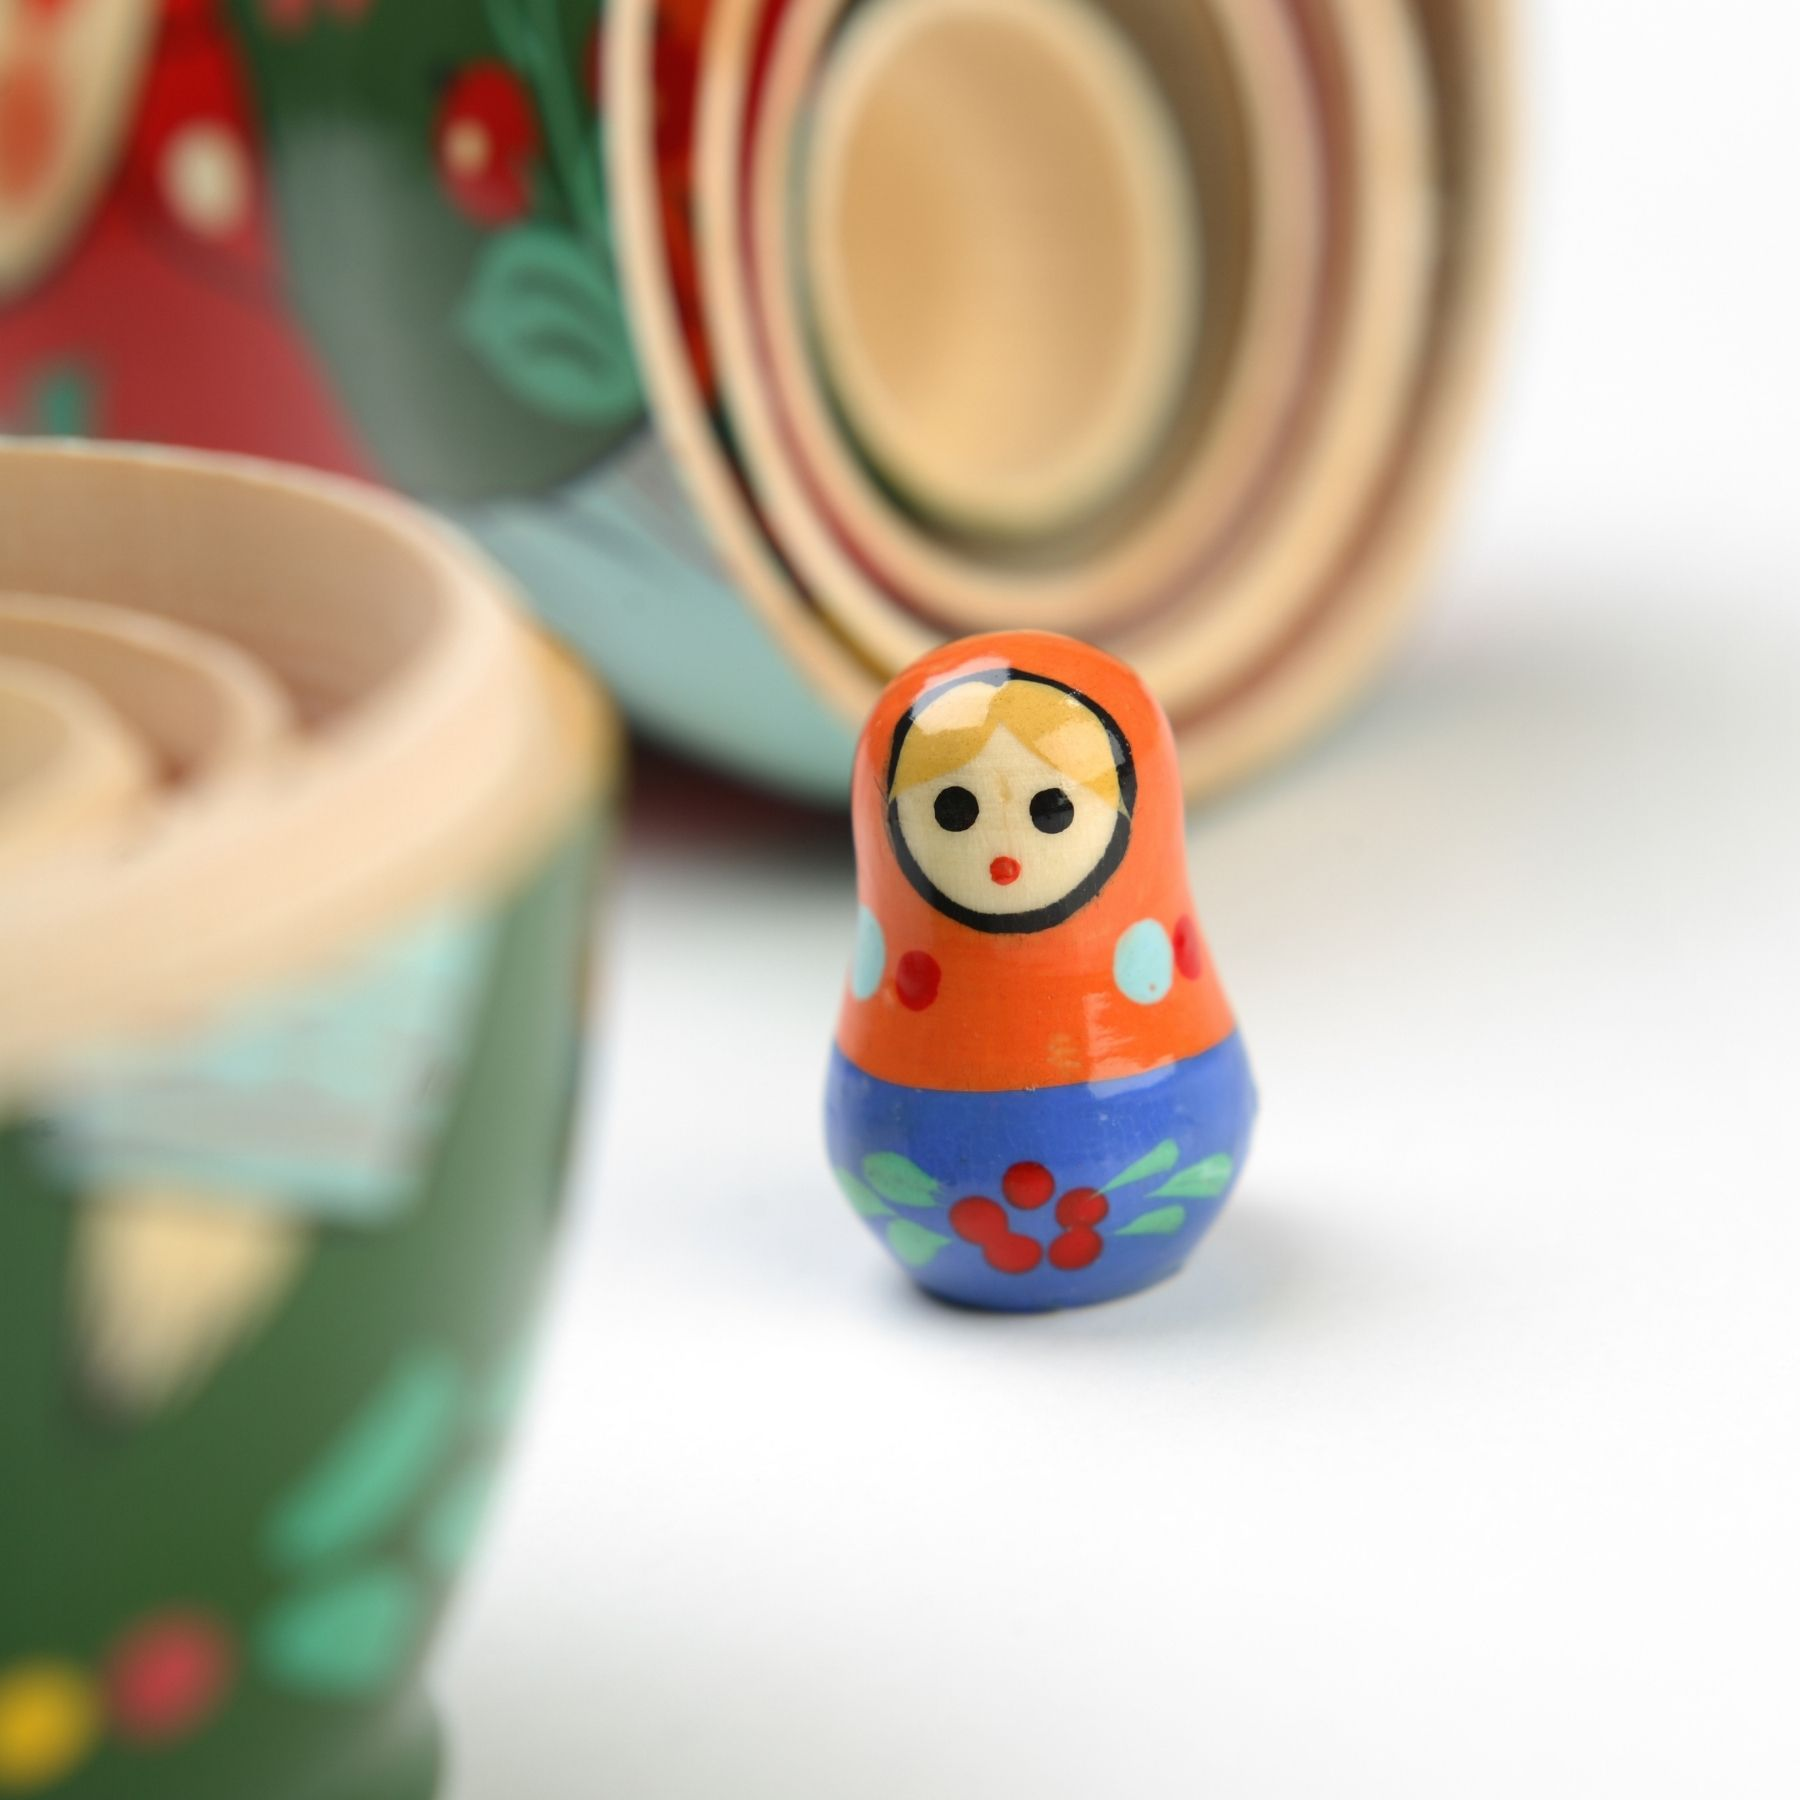 Russian dolls of Tamper Evidence